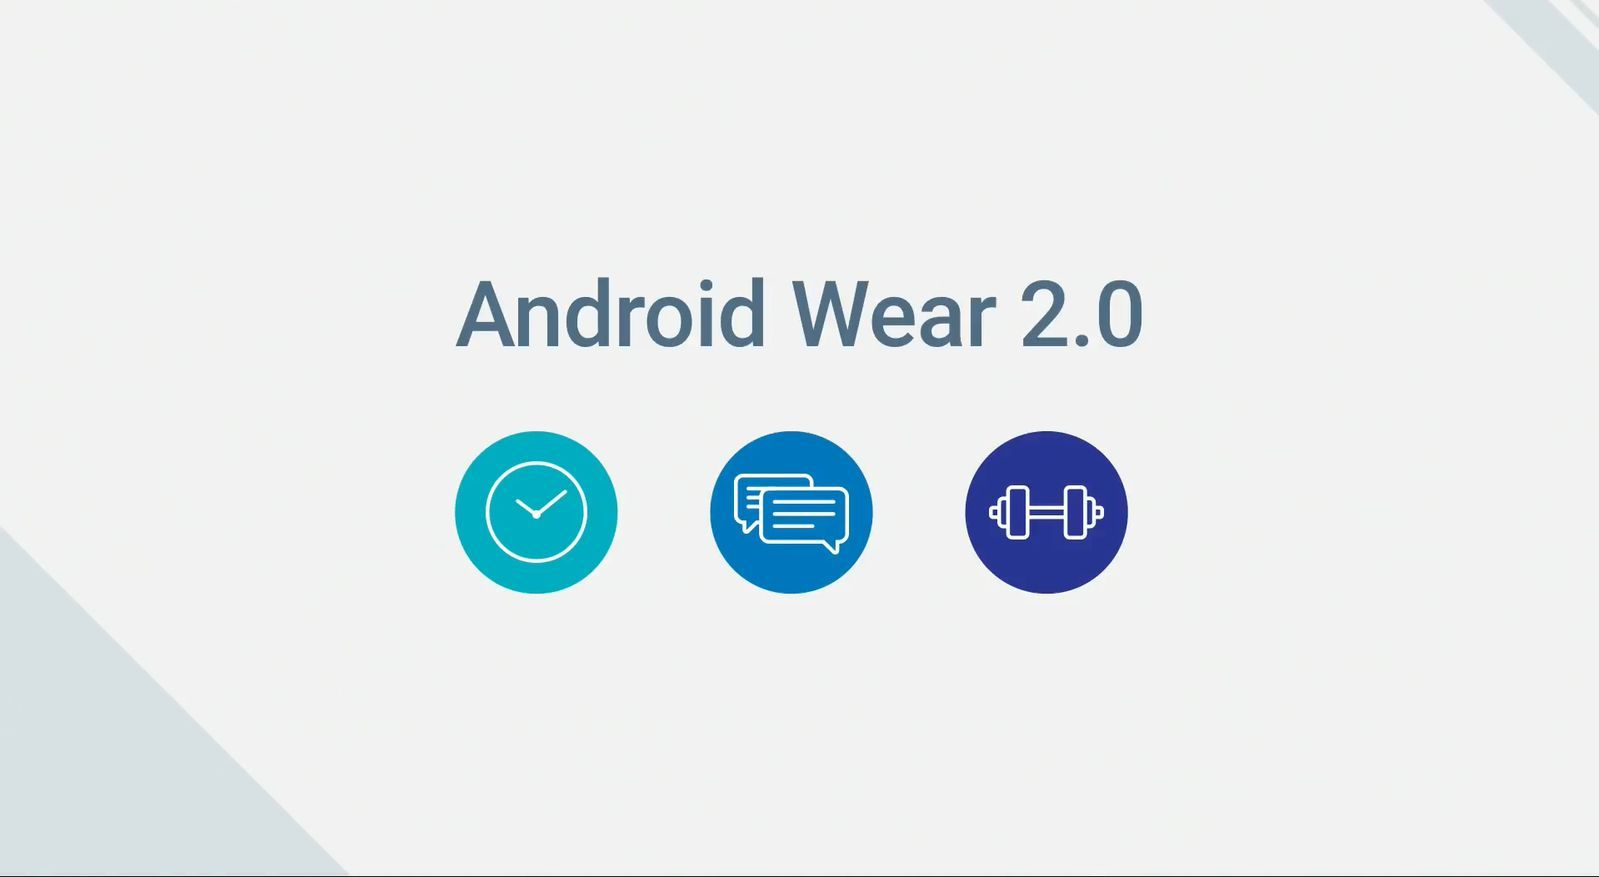 7 raisons d'attendre Android Wear 2.0